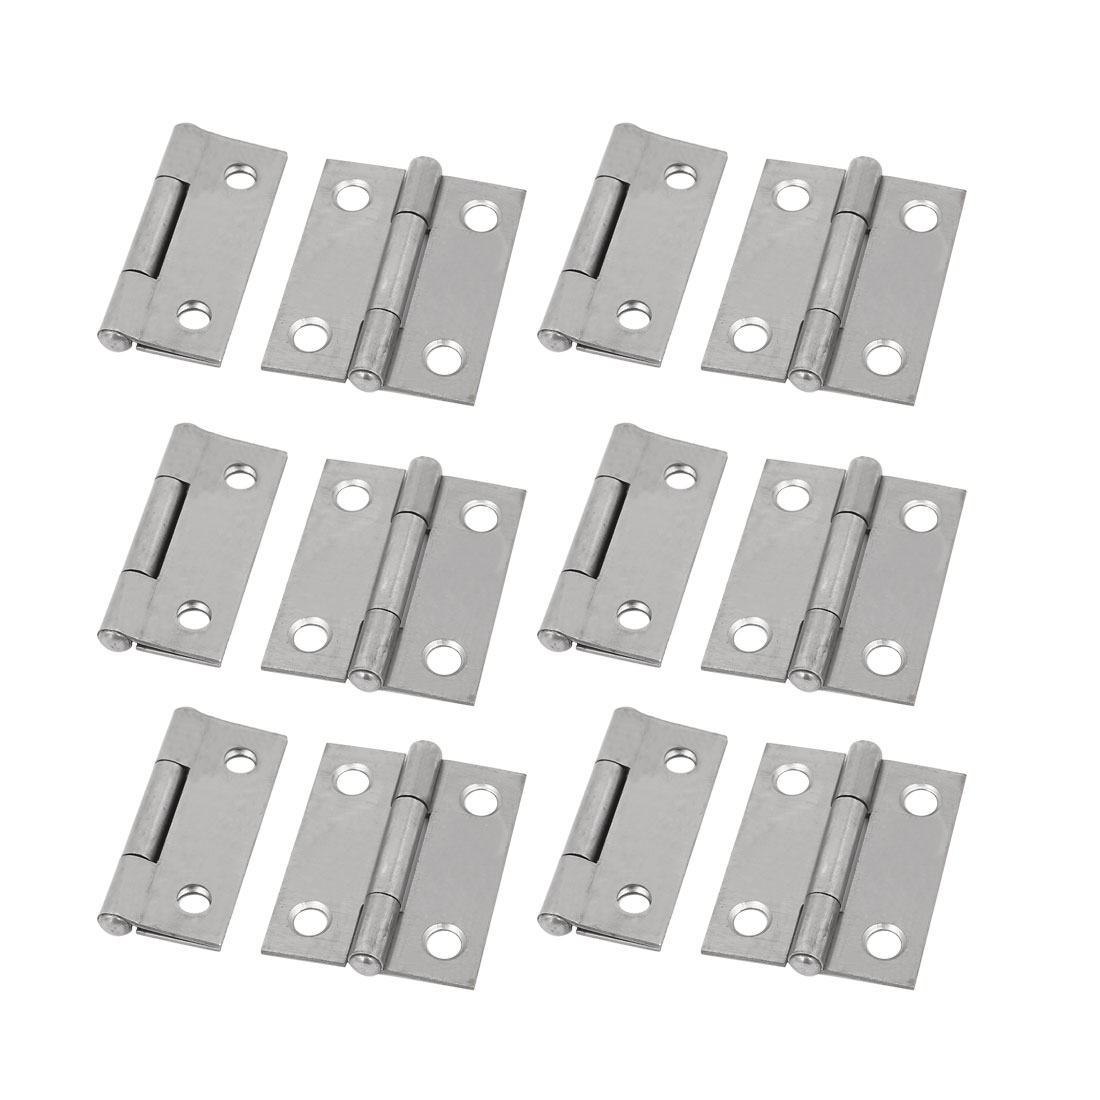 Home Furniture Wardrobe Cabinet 1.5 Inches Iron Door Butt Hinge Silver Tone 12pcs